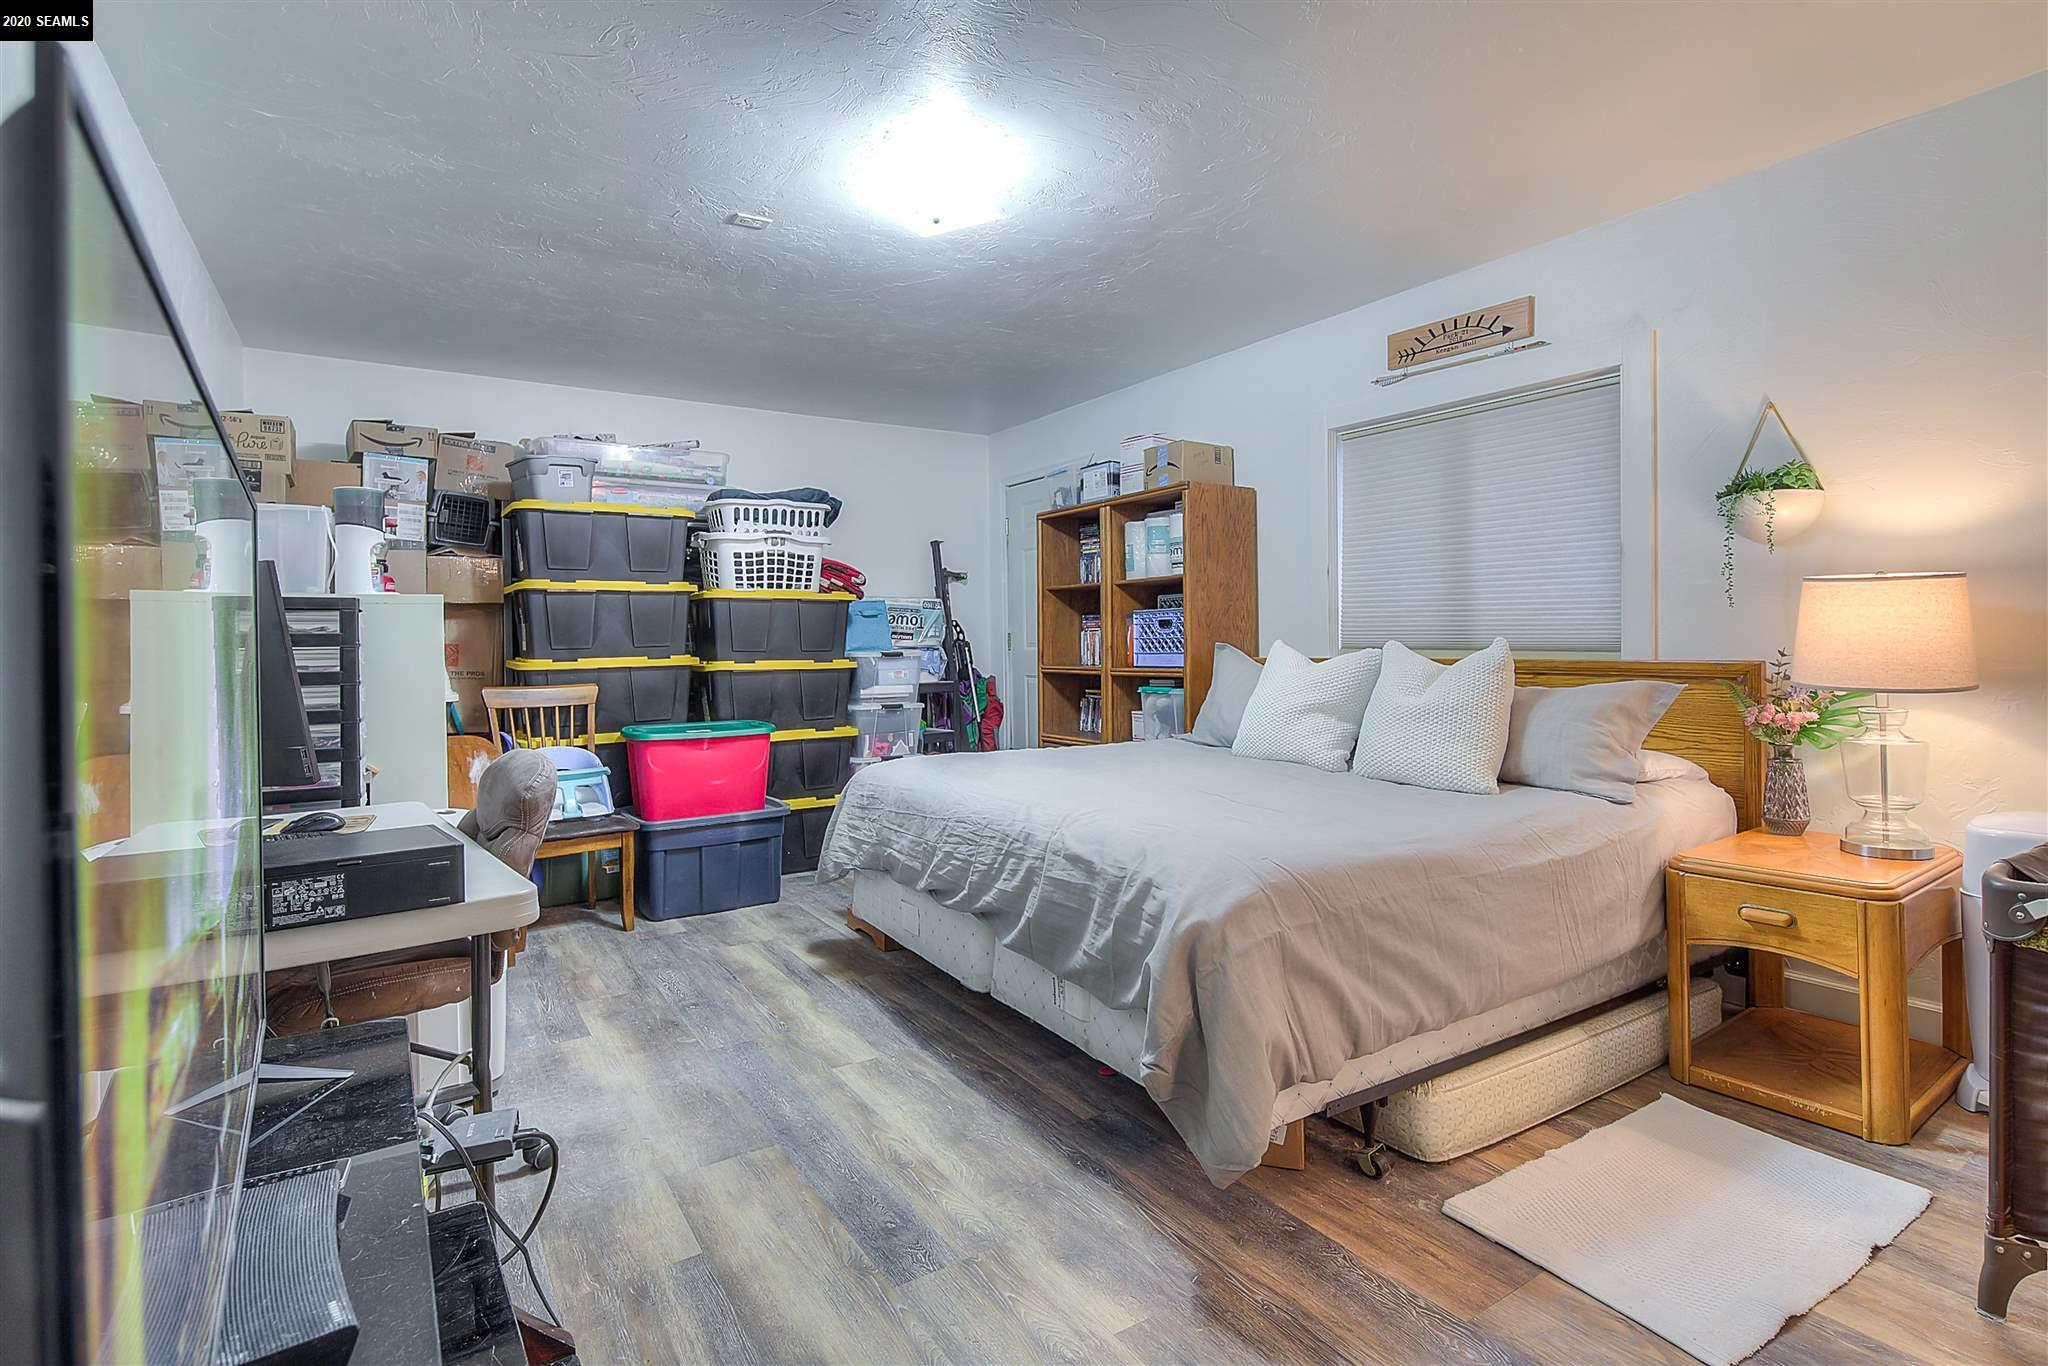 NOT LISTED AS BEDROOM